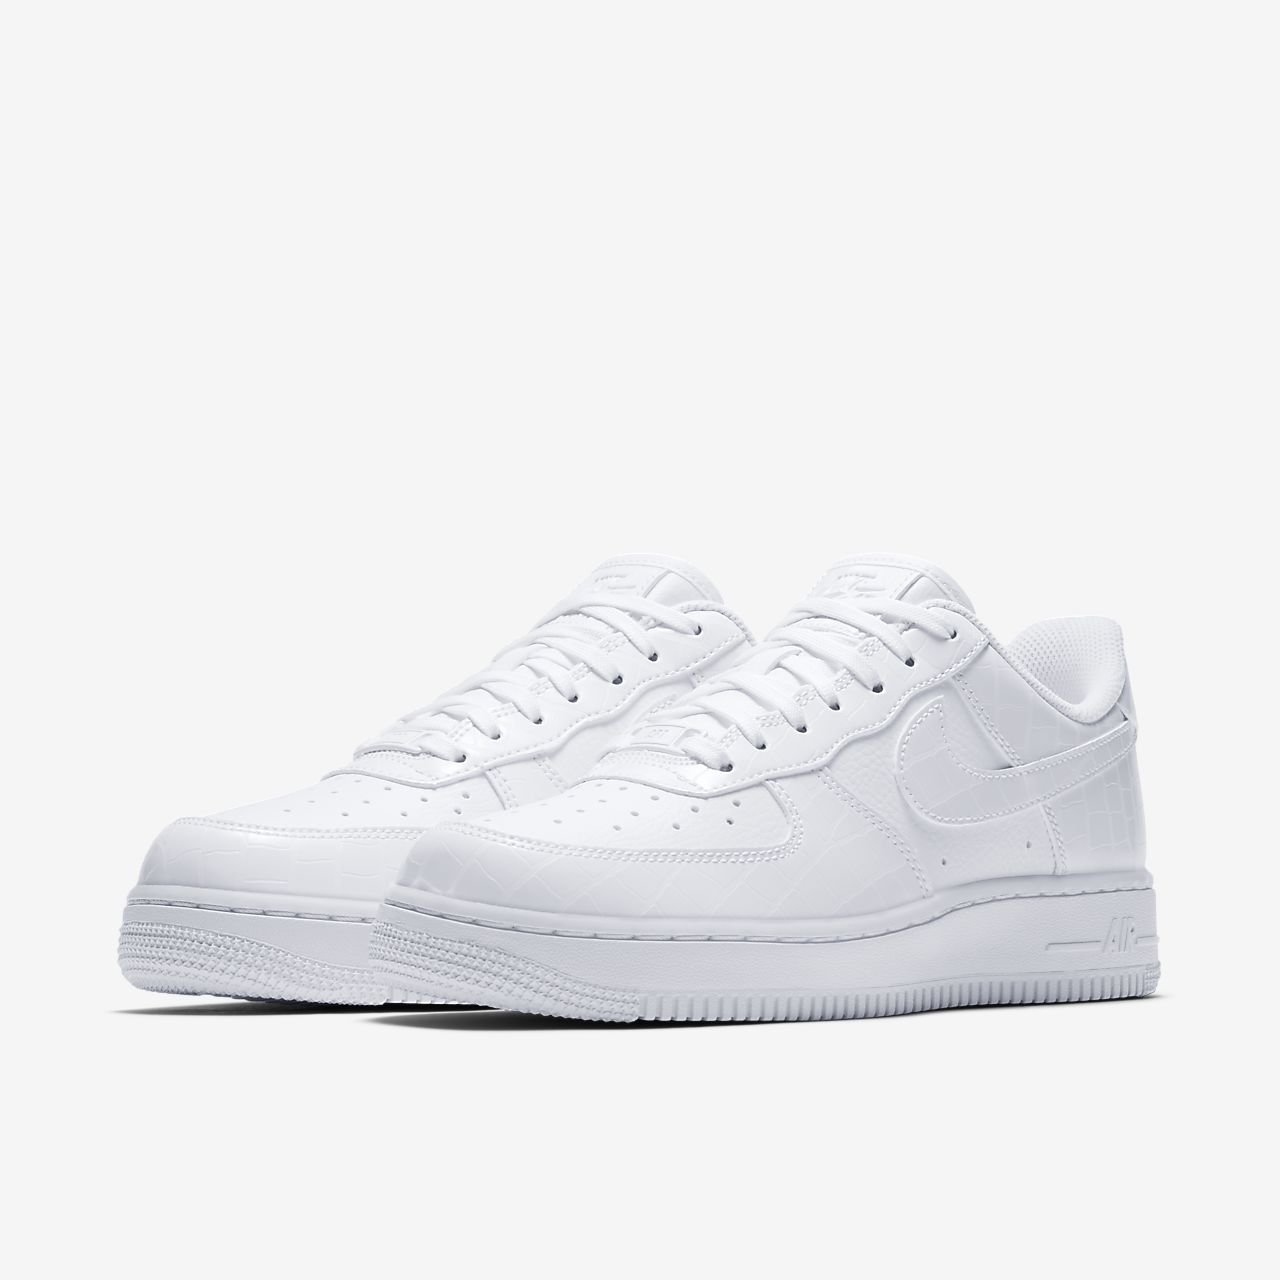 ... Nike Air Force 1 '07 Essential Women's Shoe